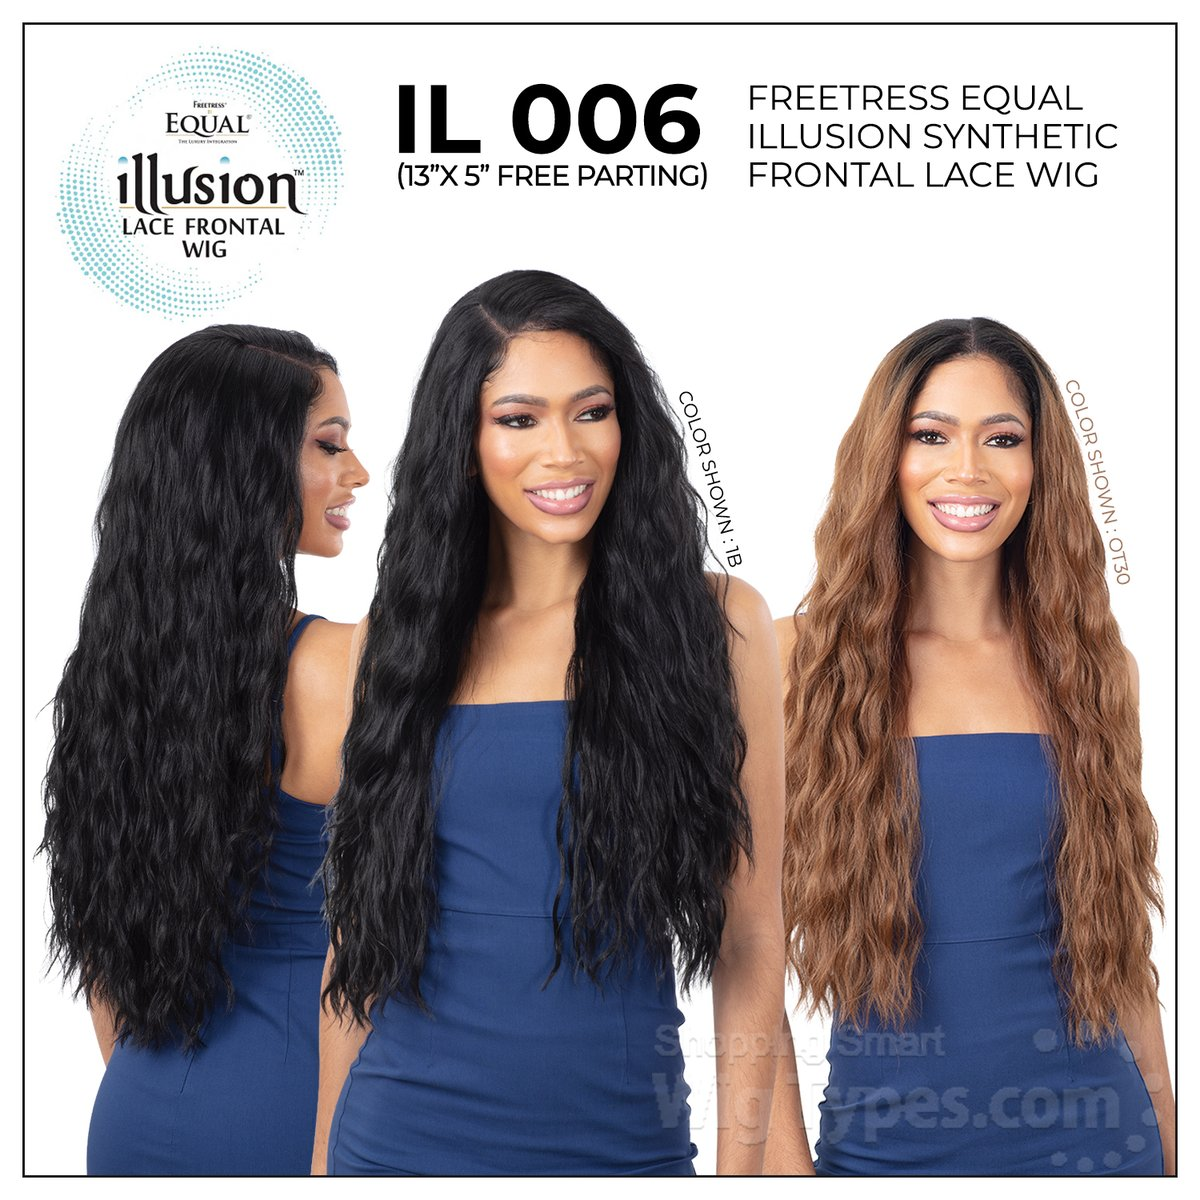 Freetress Equal Illusion Synthetic Frontal Lace Wig - IL 006 (13x5 free parting) (https://soo.nr/u7W7)  . . . . #wigtypes #wigtypesdotcom #trendyhair #protectivestyles #blackgirlhair #blackgirlmagic #instahair #Longwigs #lacefrontalwig #illusionwig #freepartingwig #il006wigpic.twitter.com/GxqtqyLfsZ